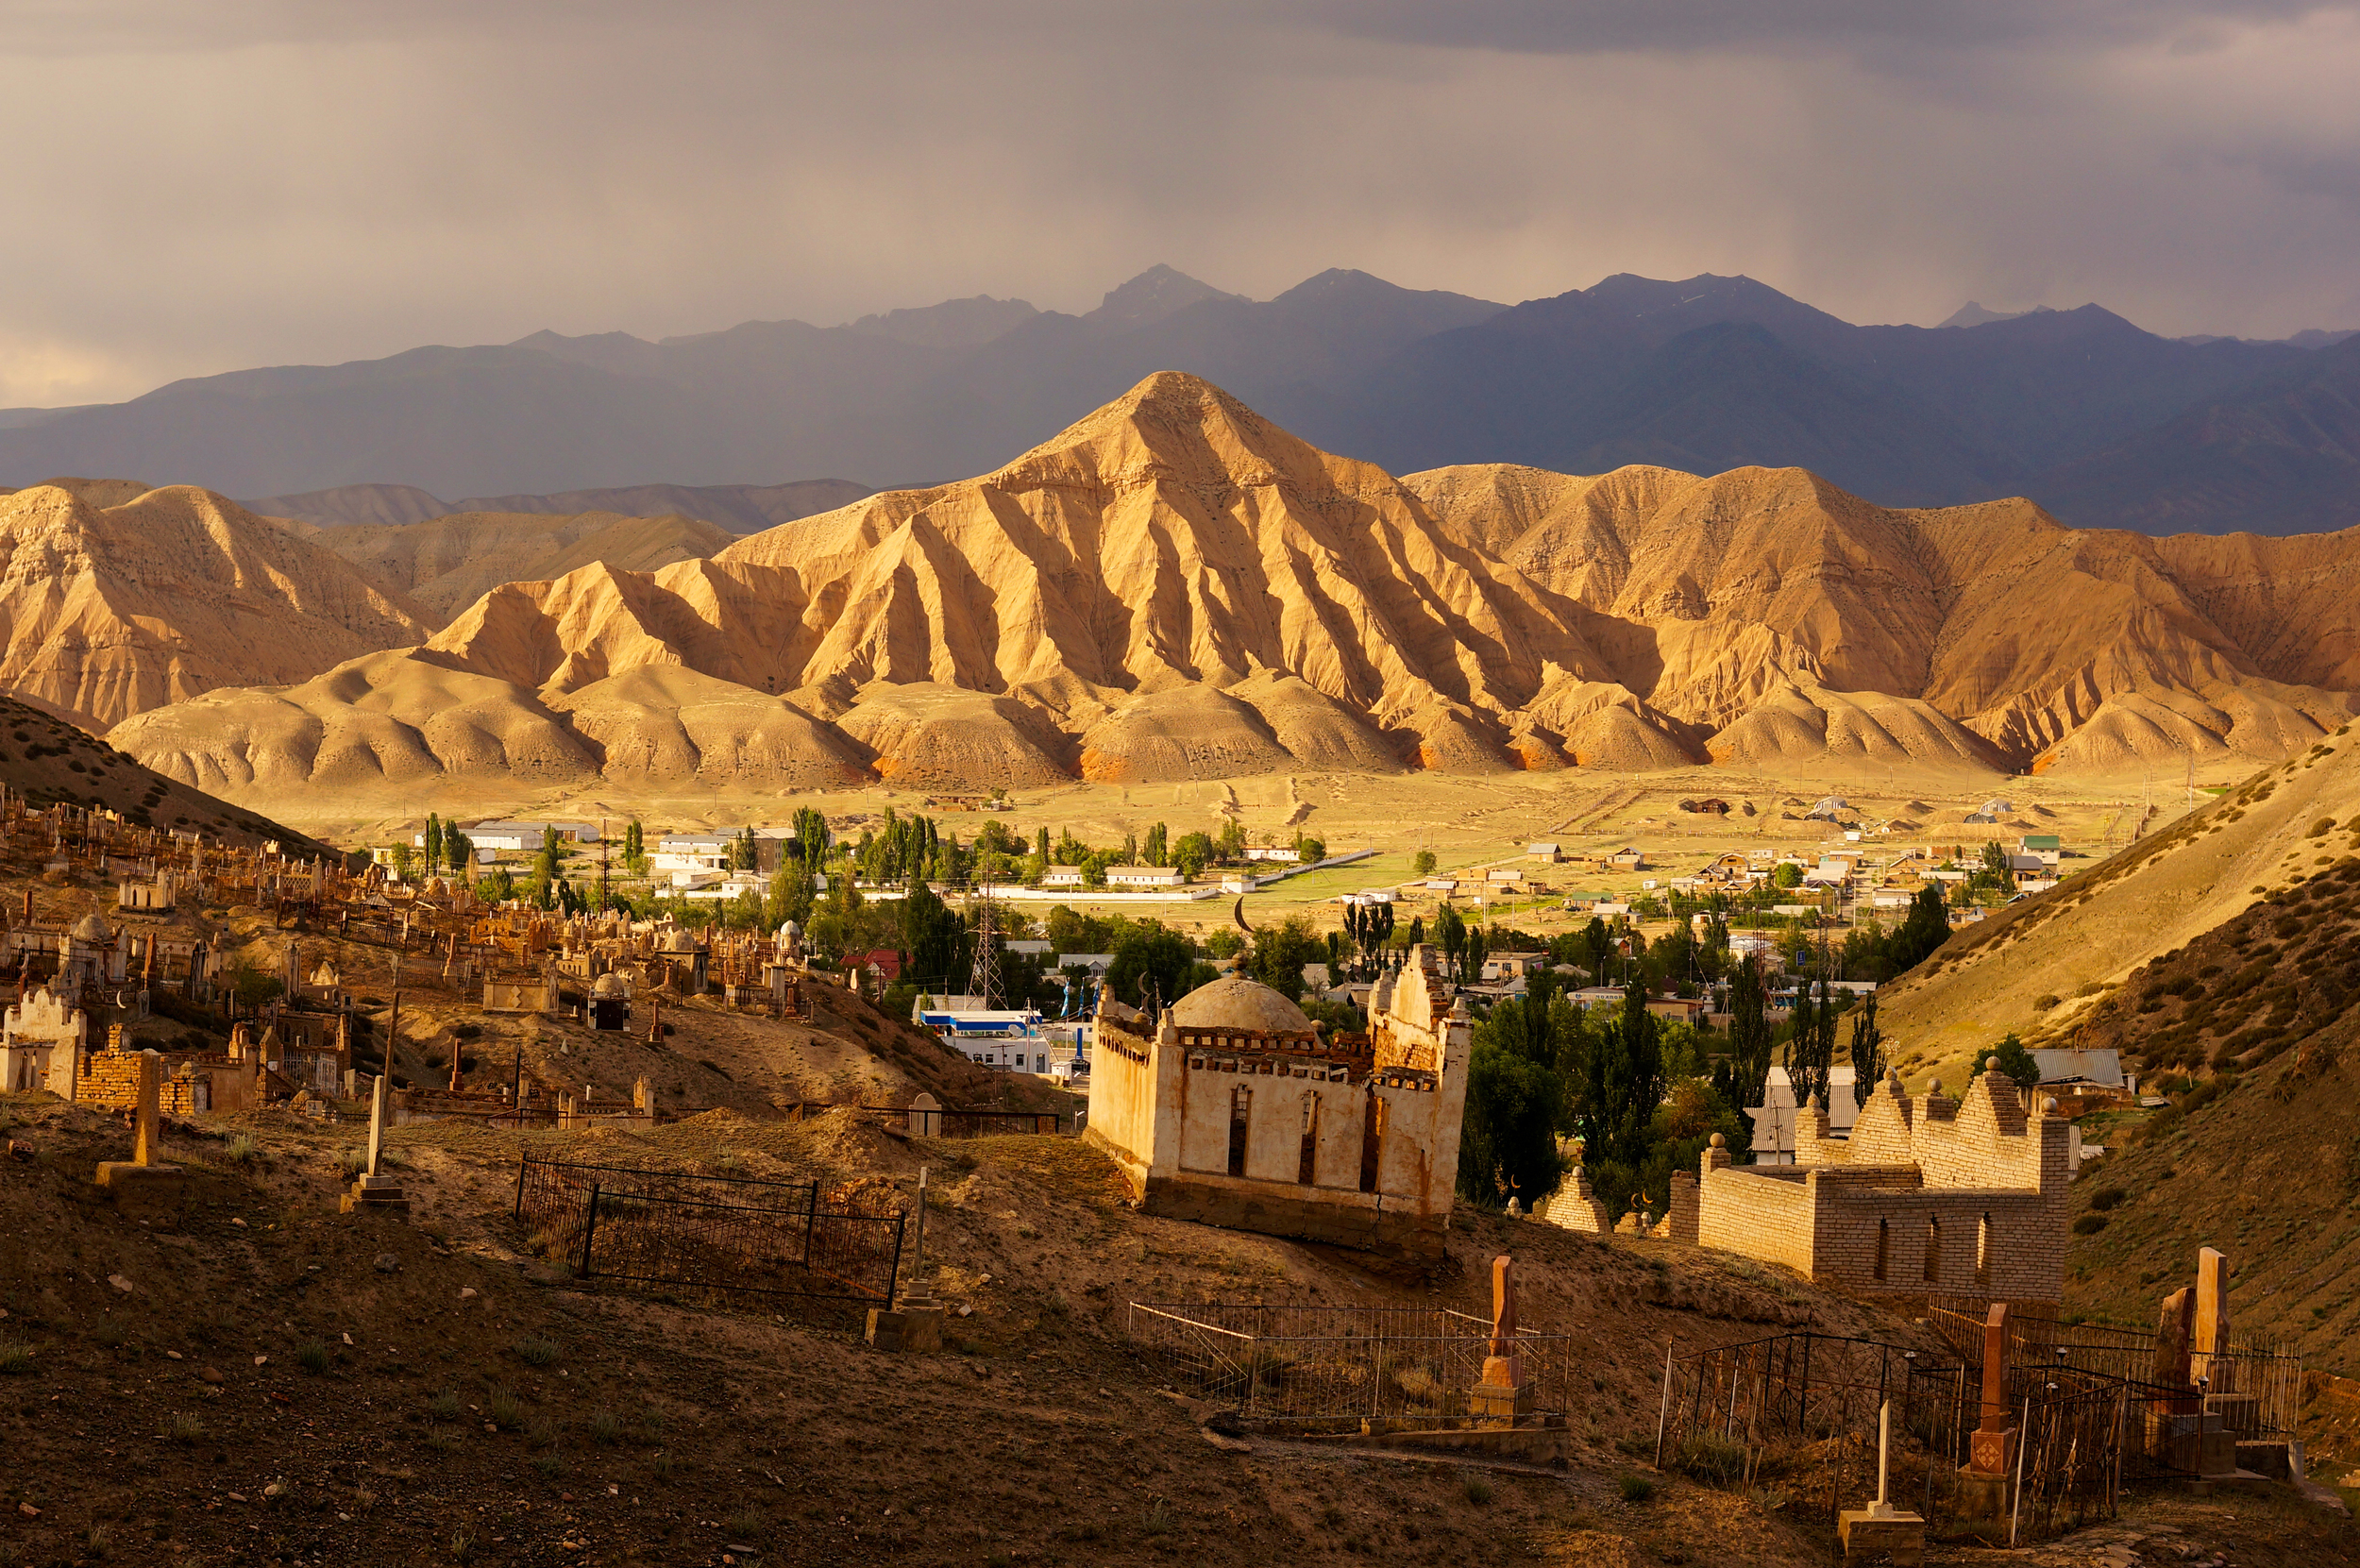 the town of Naryn at sunset